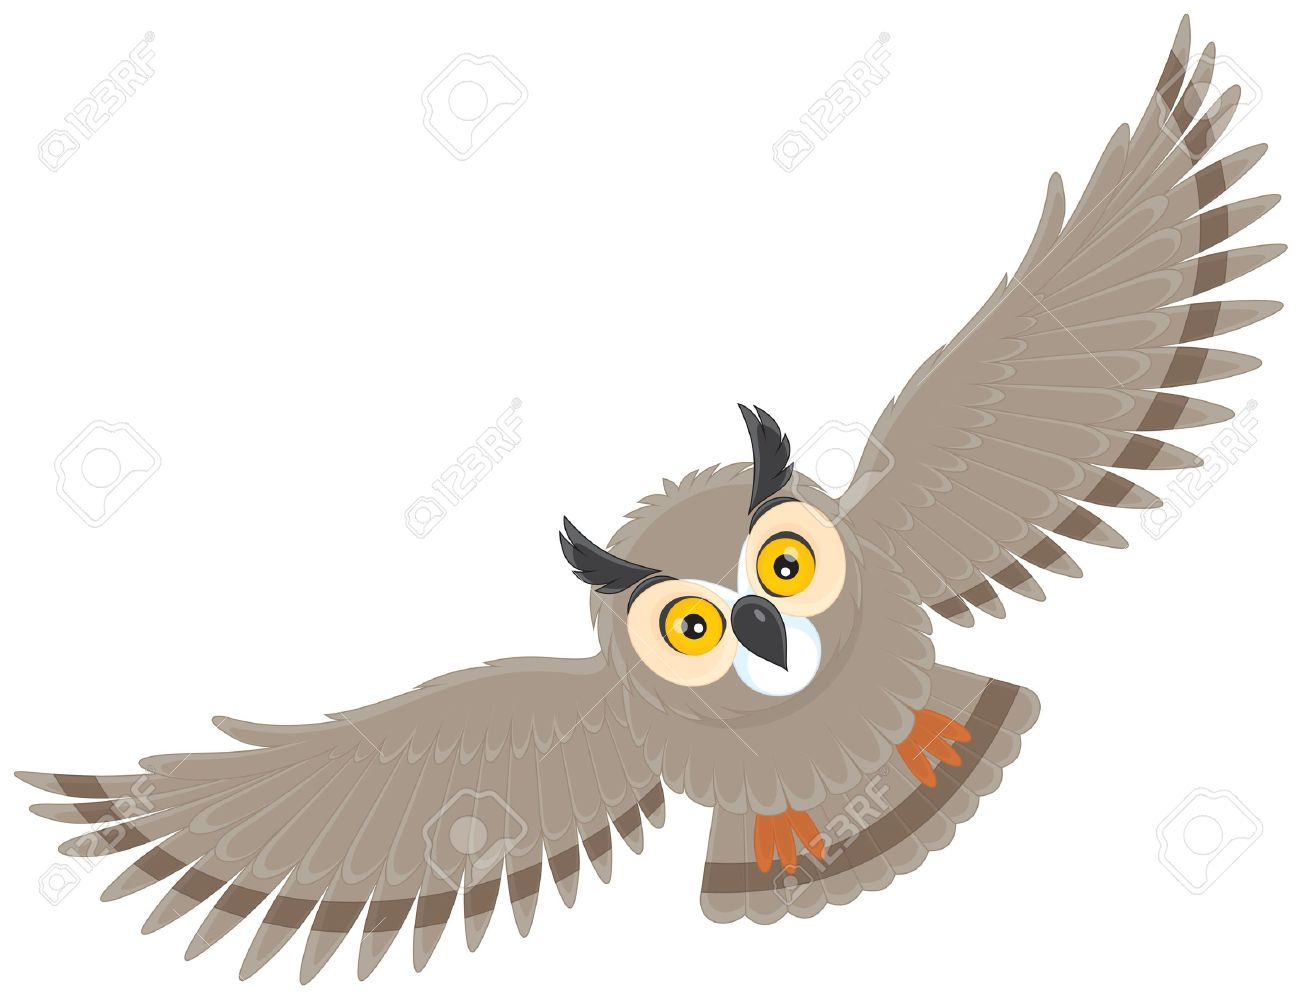 Eagle-owl clipart #11, Download drawings